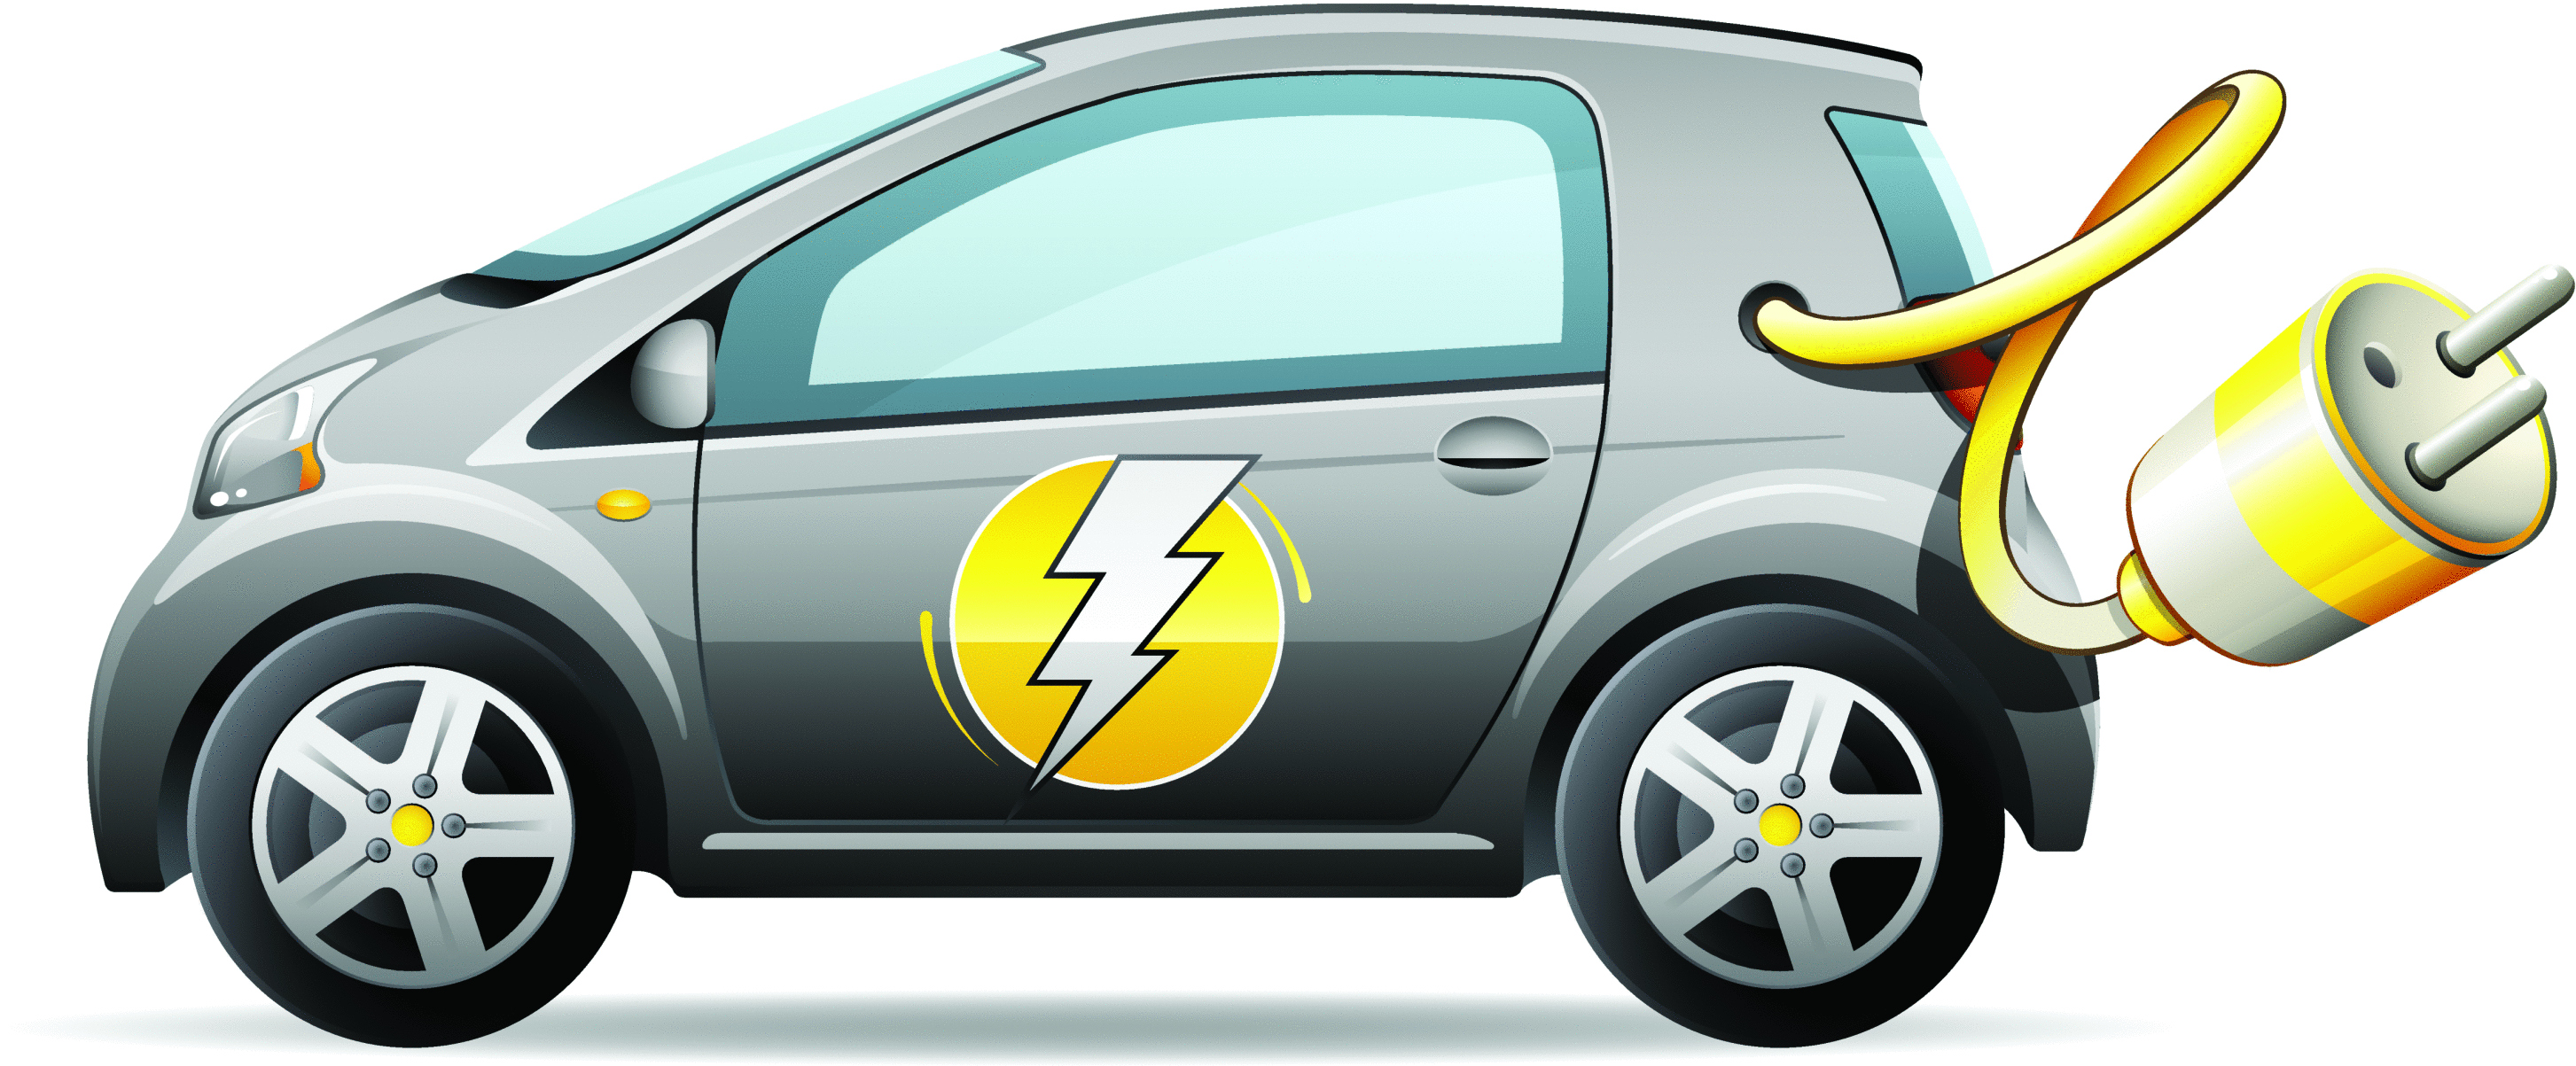 New Rule Requires Electric And Hybrid Vehicles To Emit Alerts At Low Sds